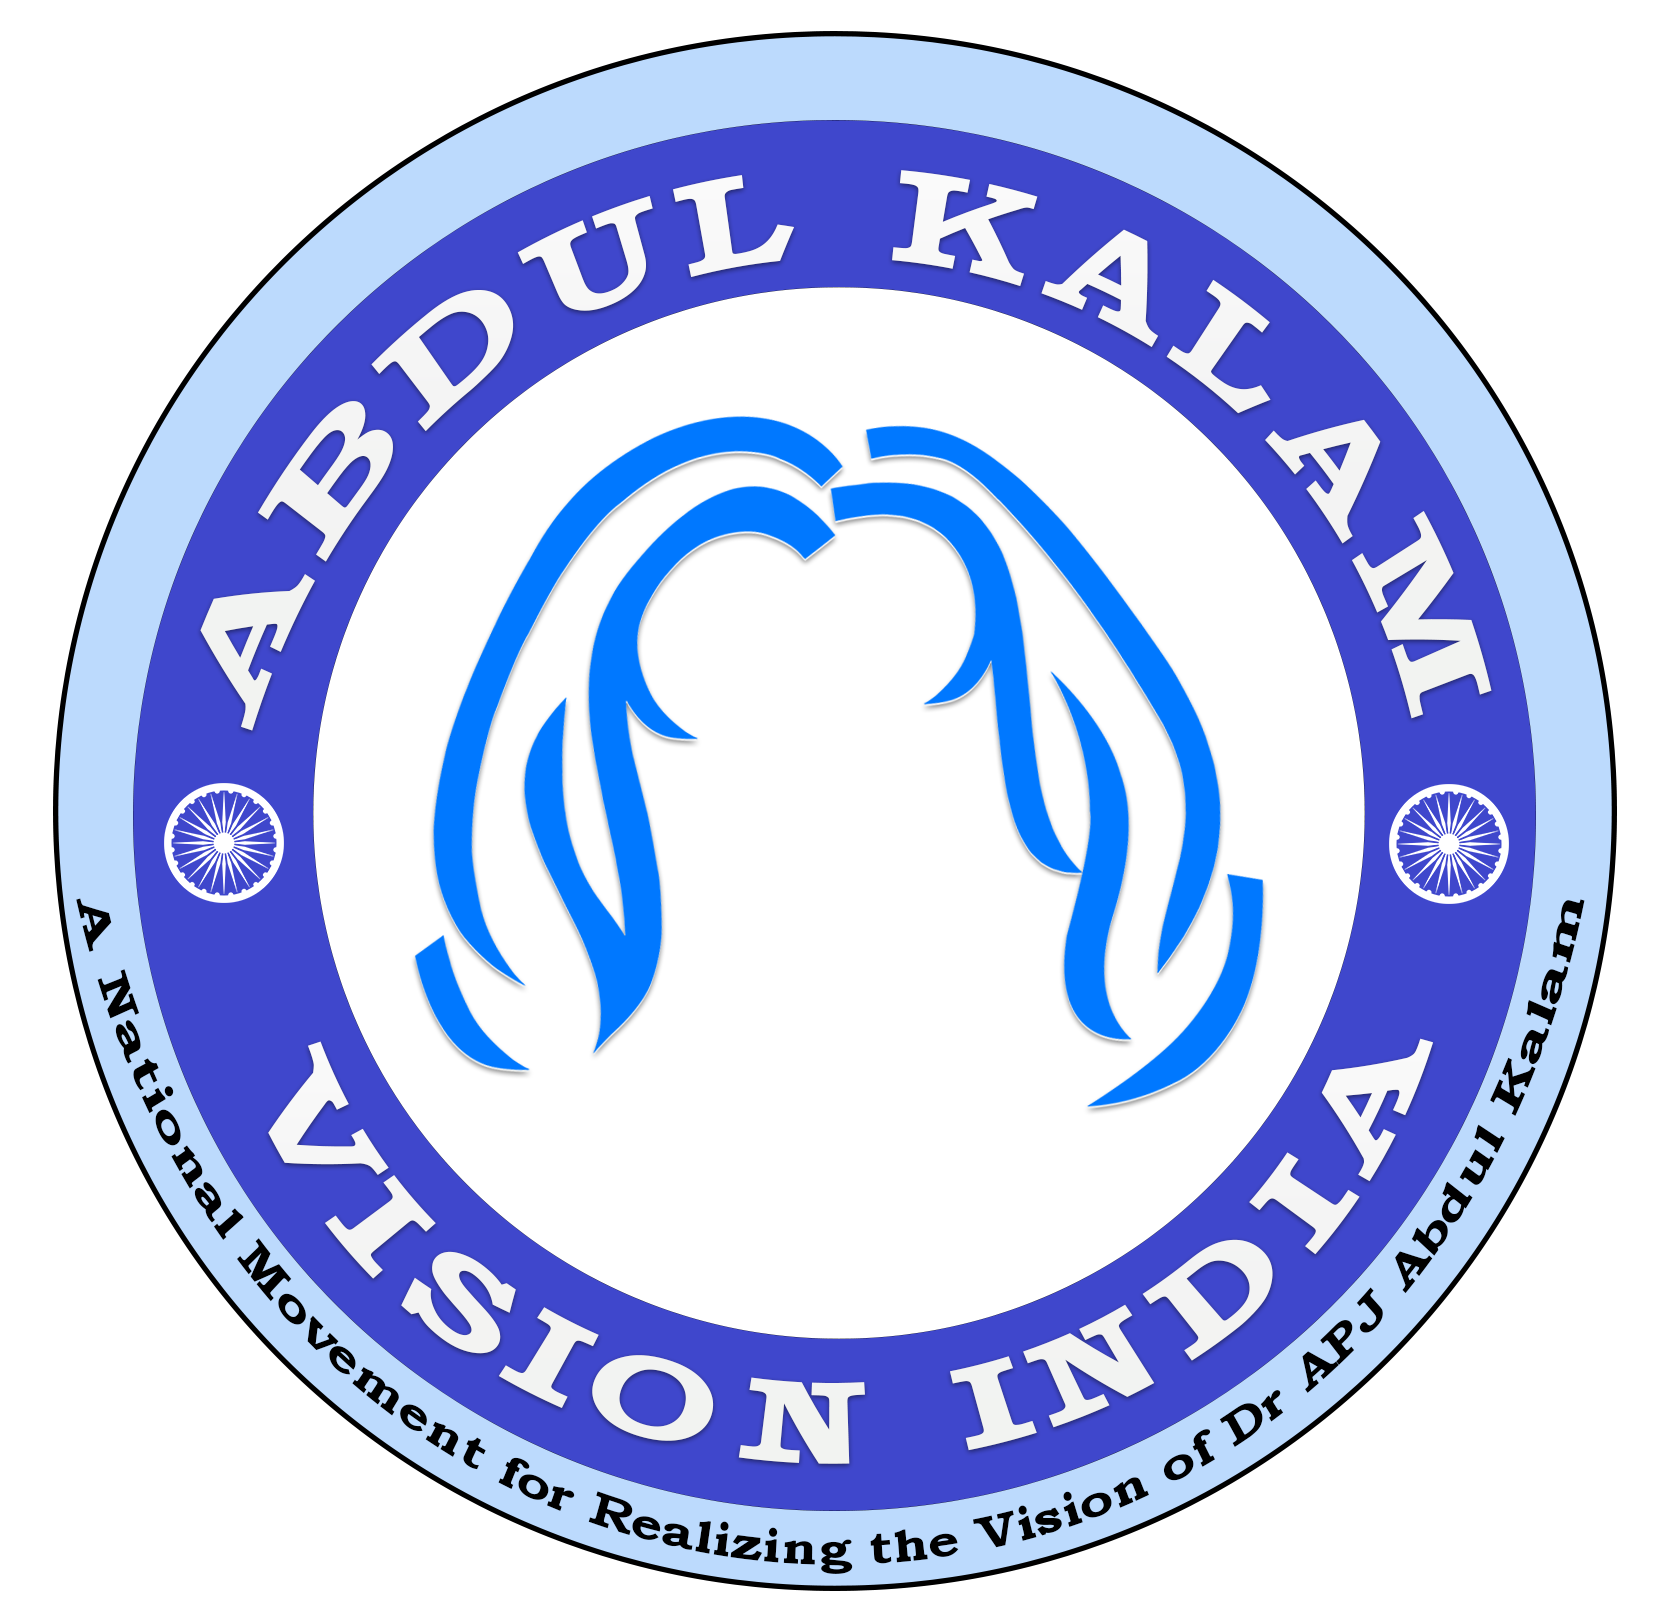 dr apj official website dr kalam speeches dr kalam vision